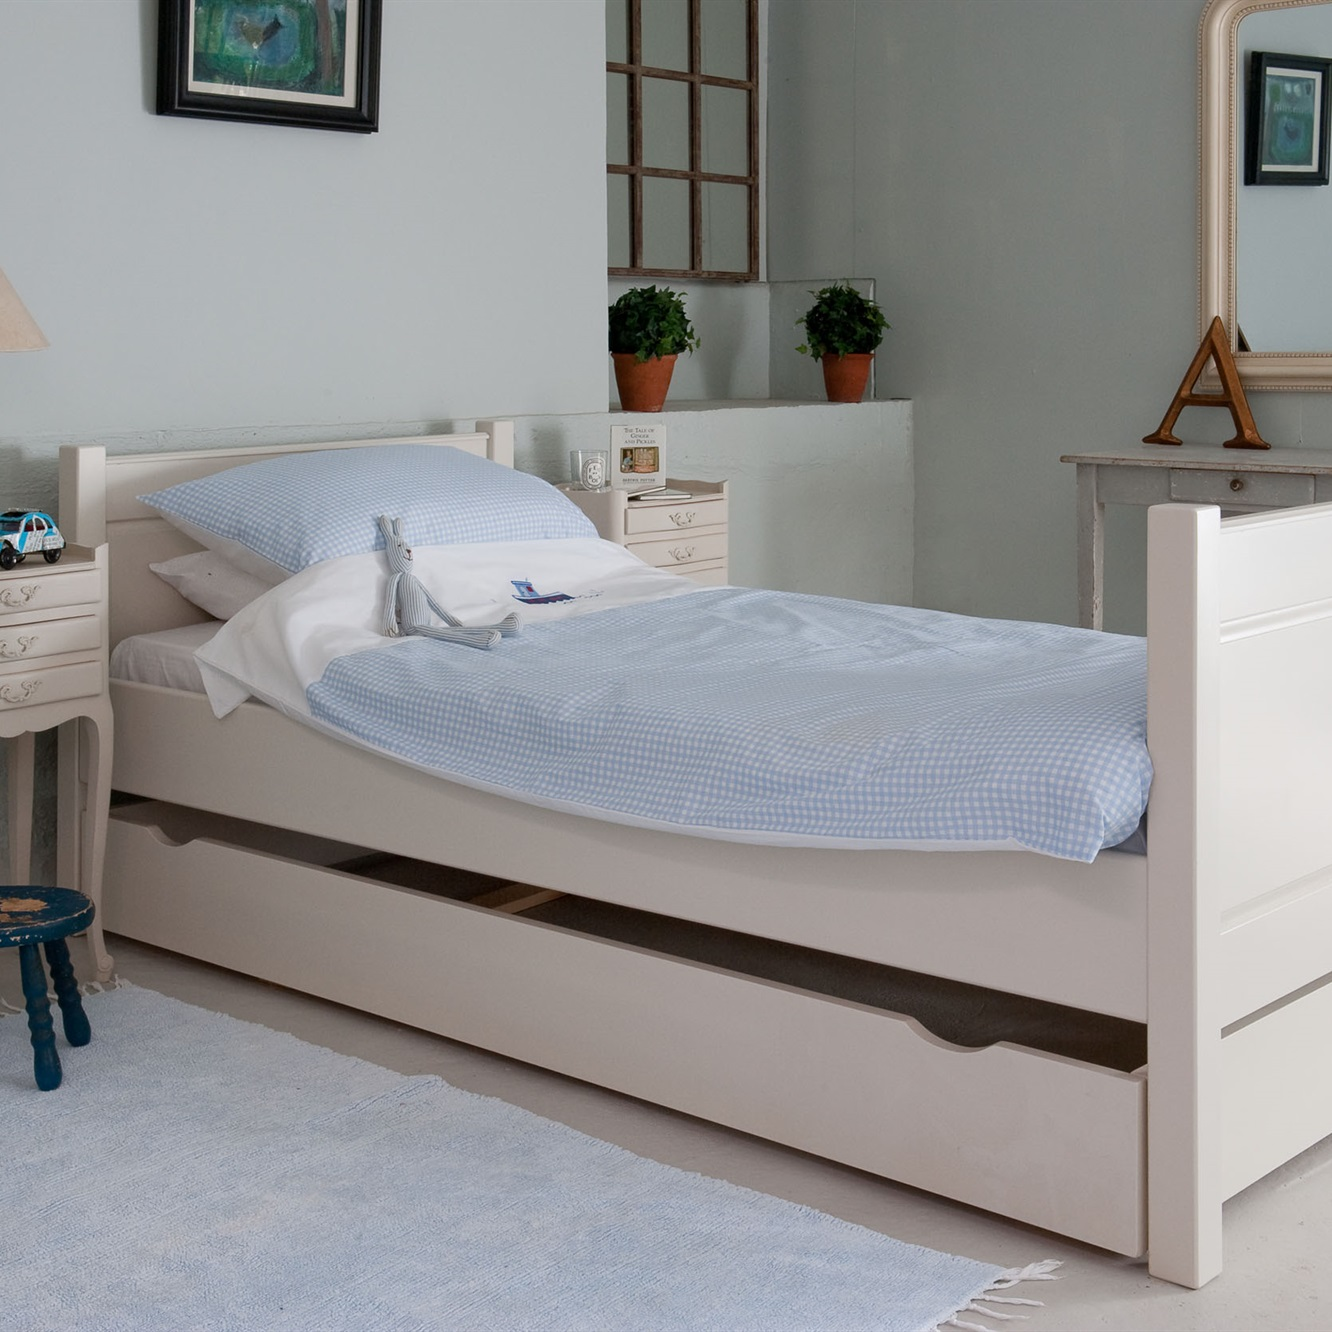 New England bed with underbed storage